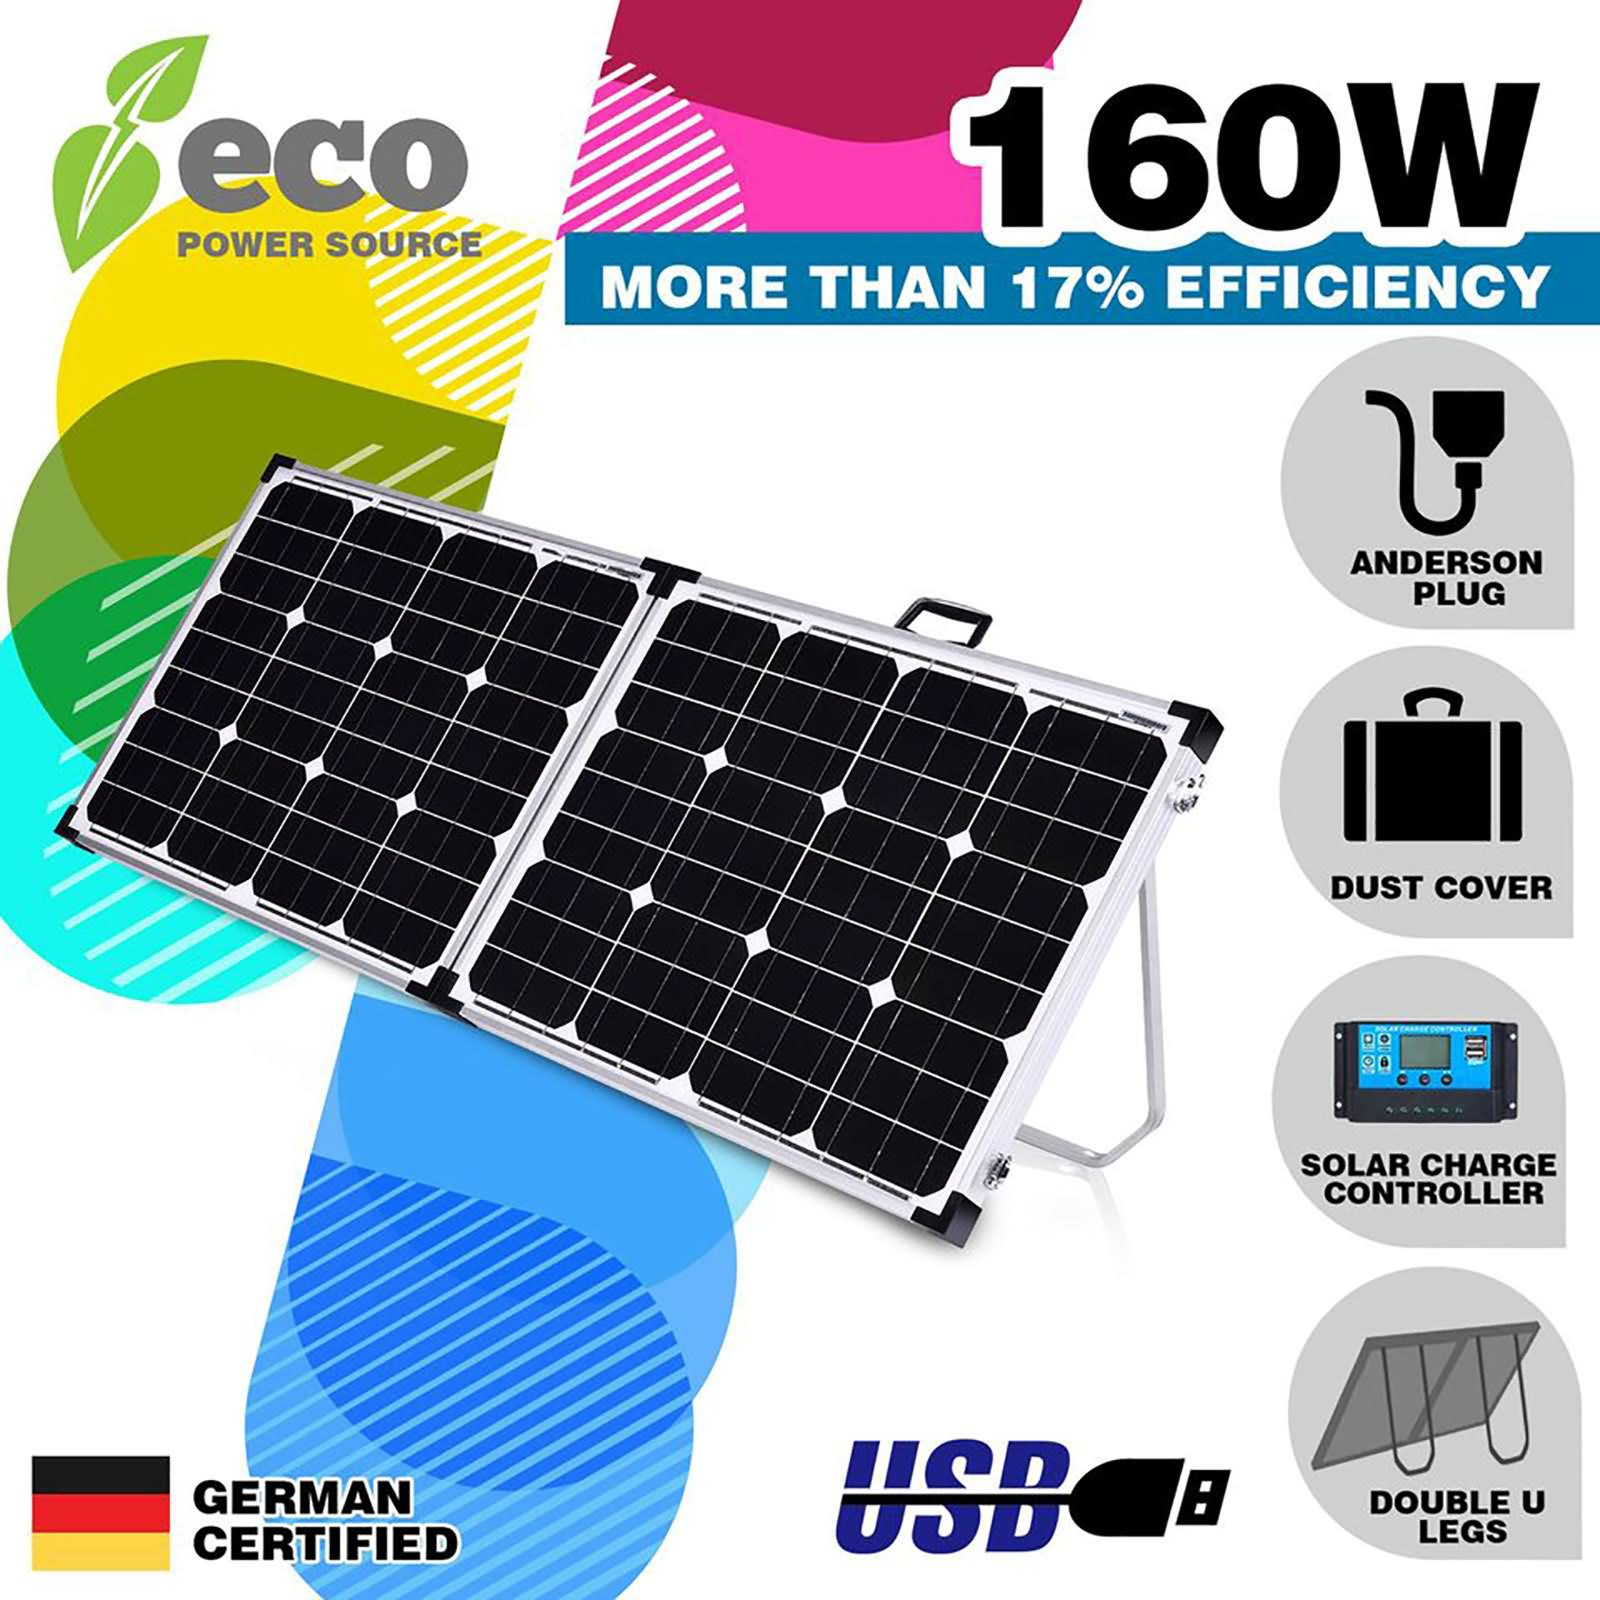 Able 200w Etfe Solar Panel Kits For Caravan Rv Boat 12v Battery Charge+1000w Inverter Alternative & Solar Energy Home, Furniture & Diy